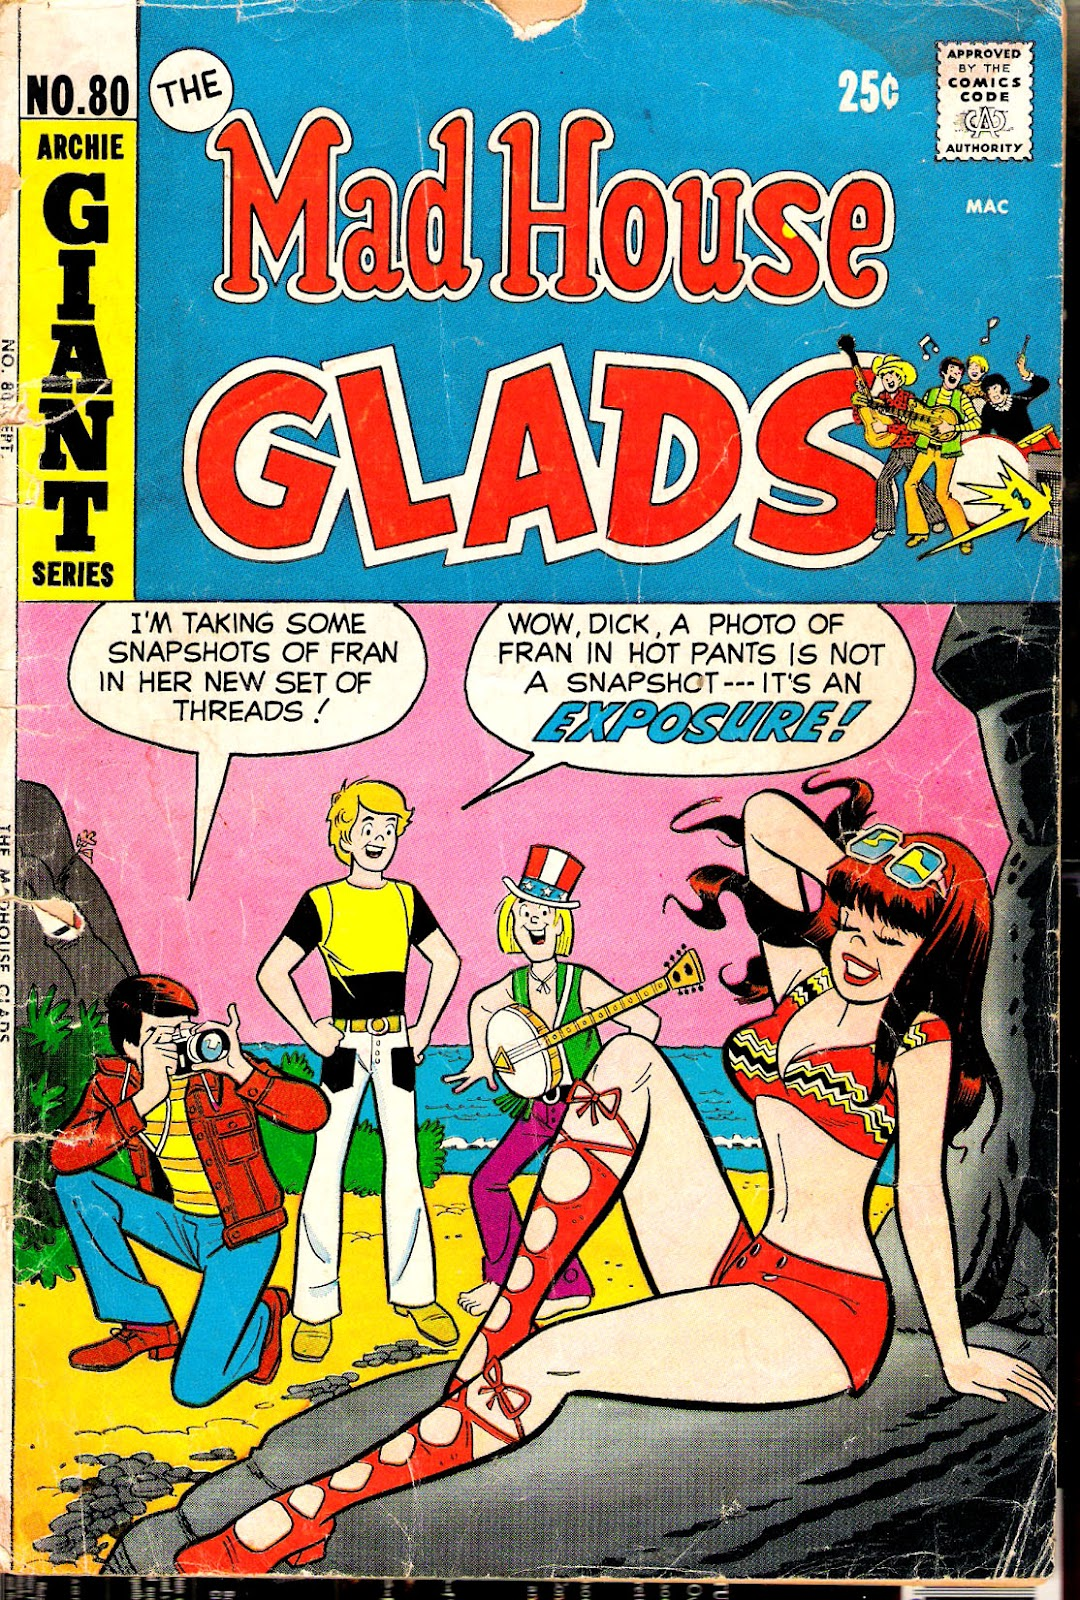 Read online The Mad House Glads comic -  Issue #80 - 1